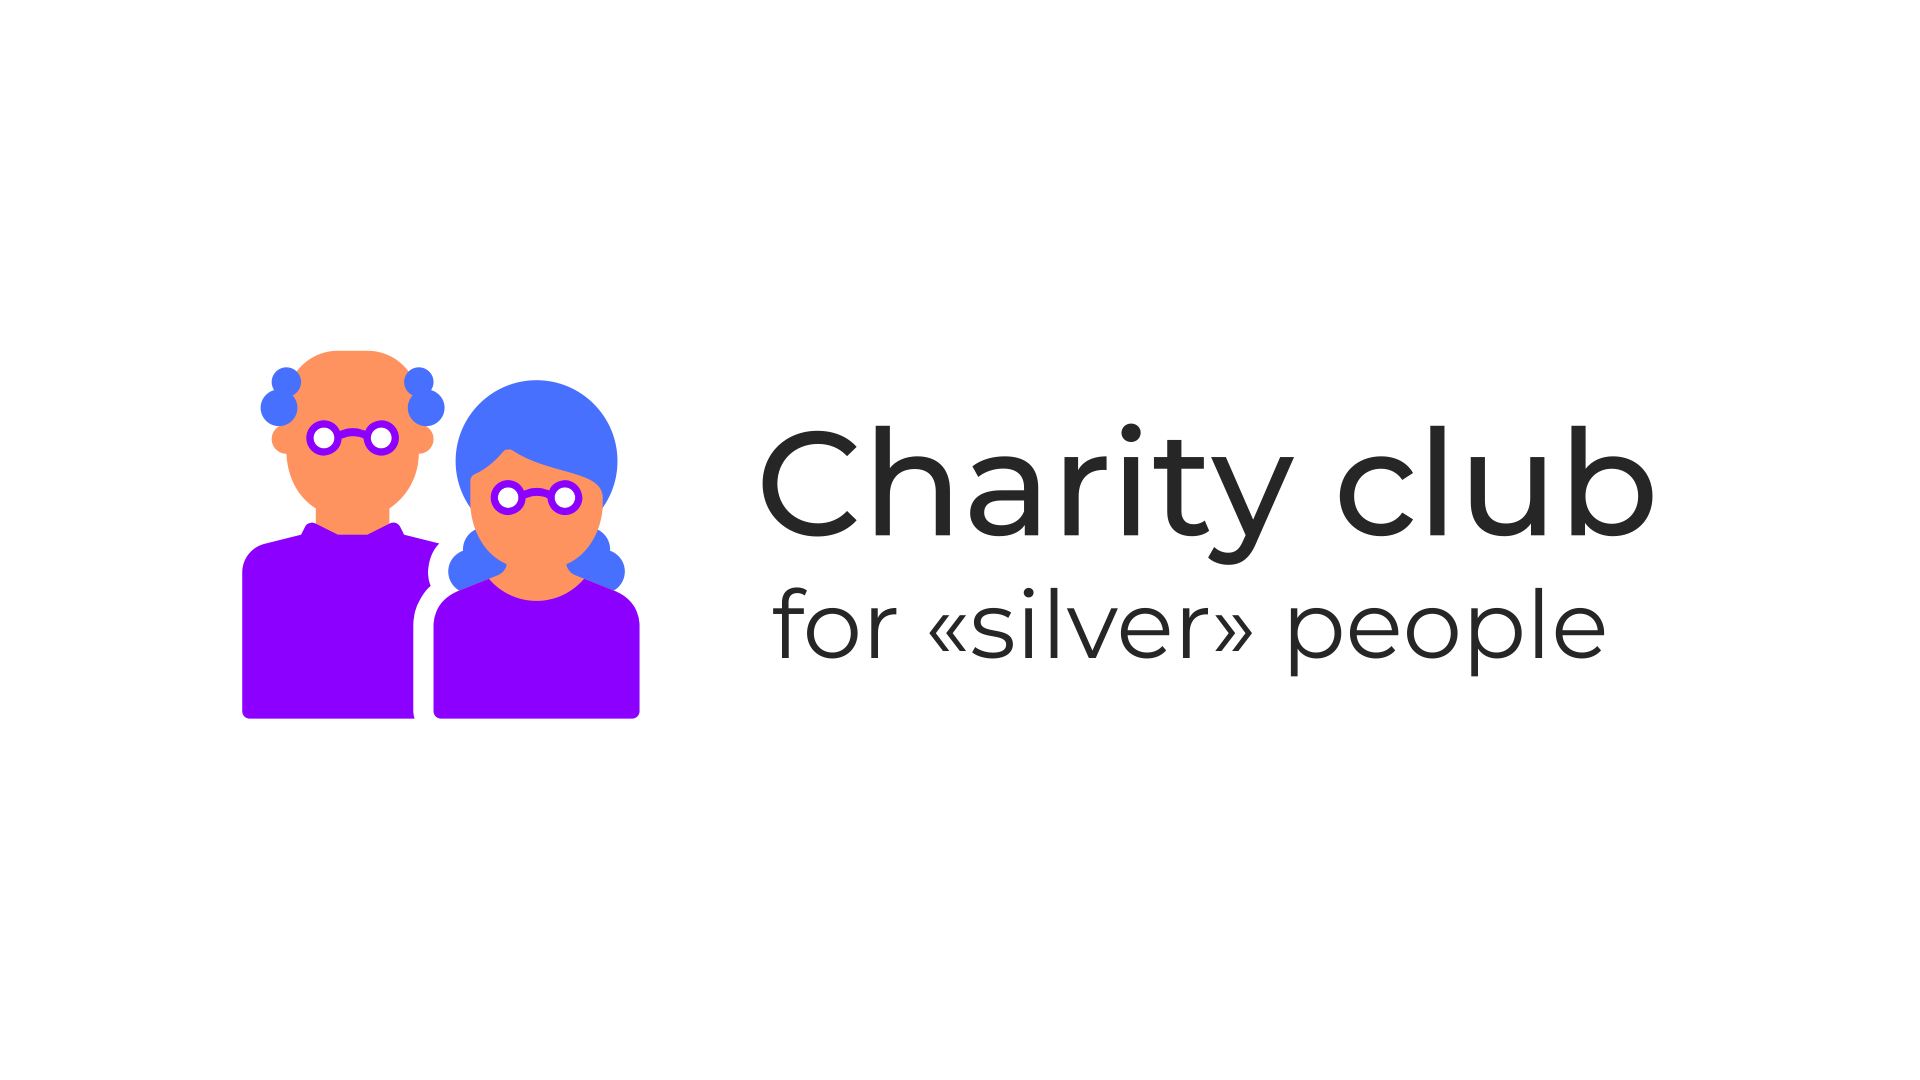 Charity for silver people